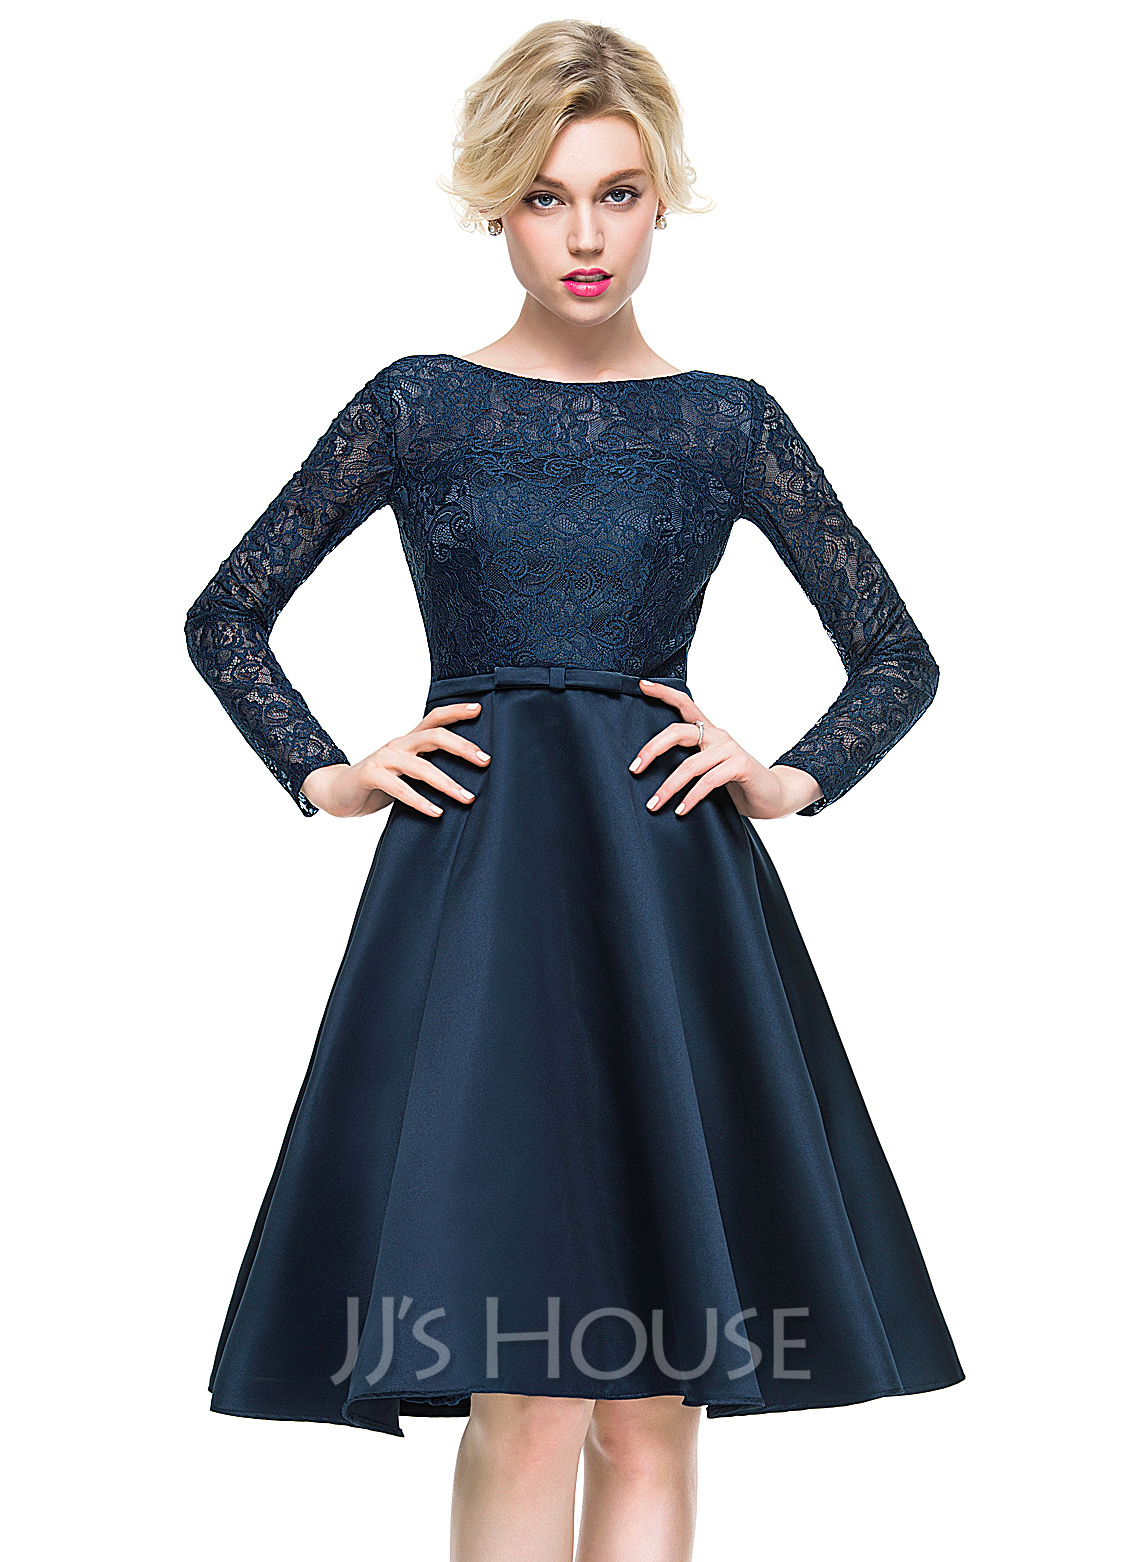 A-Line/Princess Scoop Neck Knee-Length Satin Lace Cocktail Dress With Bow(s)